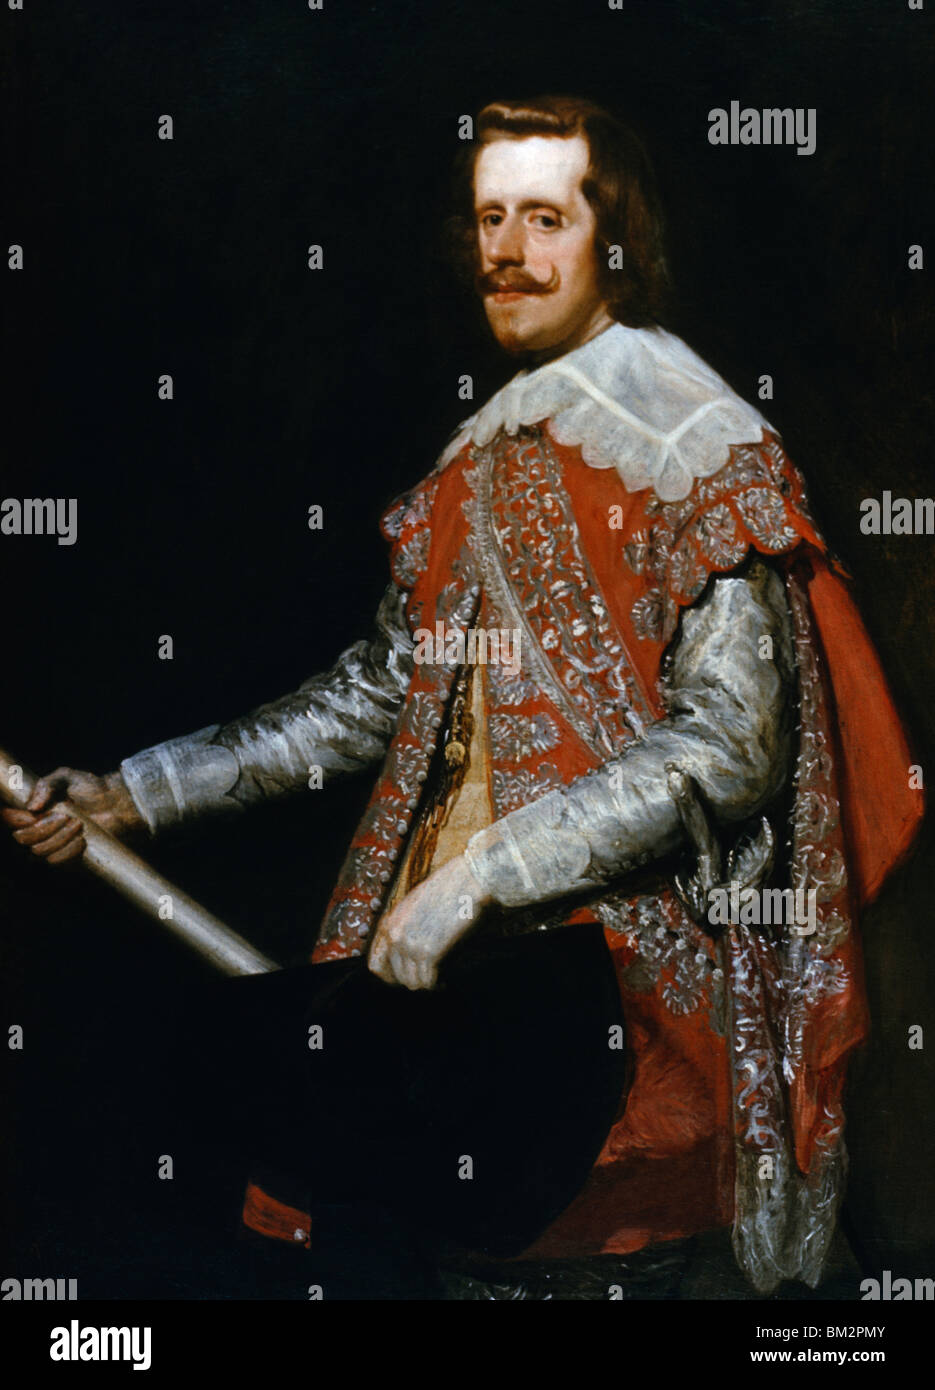 Philip IV by Diego Velazquez, (1599-1660) - Stock Image